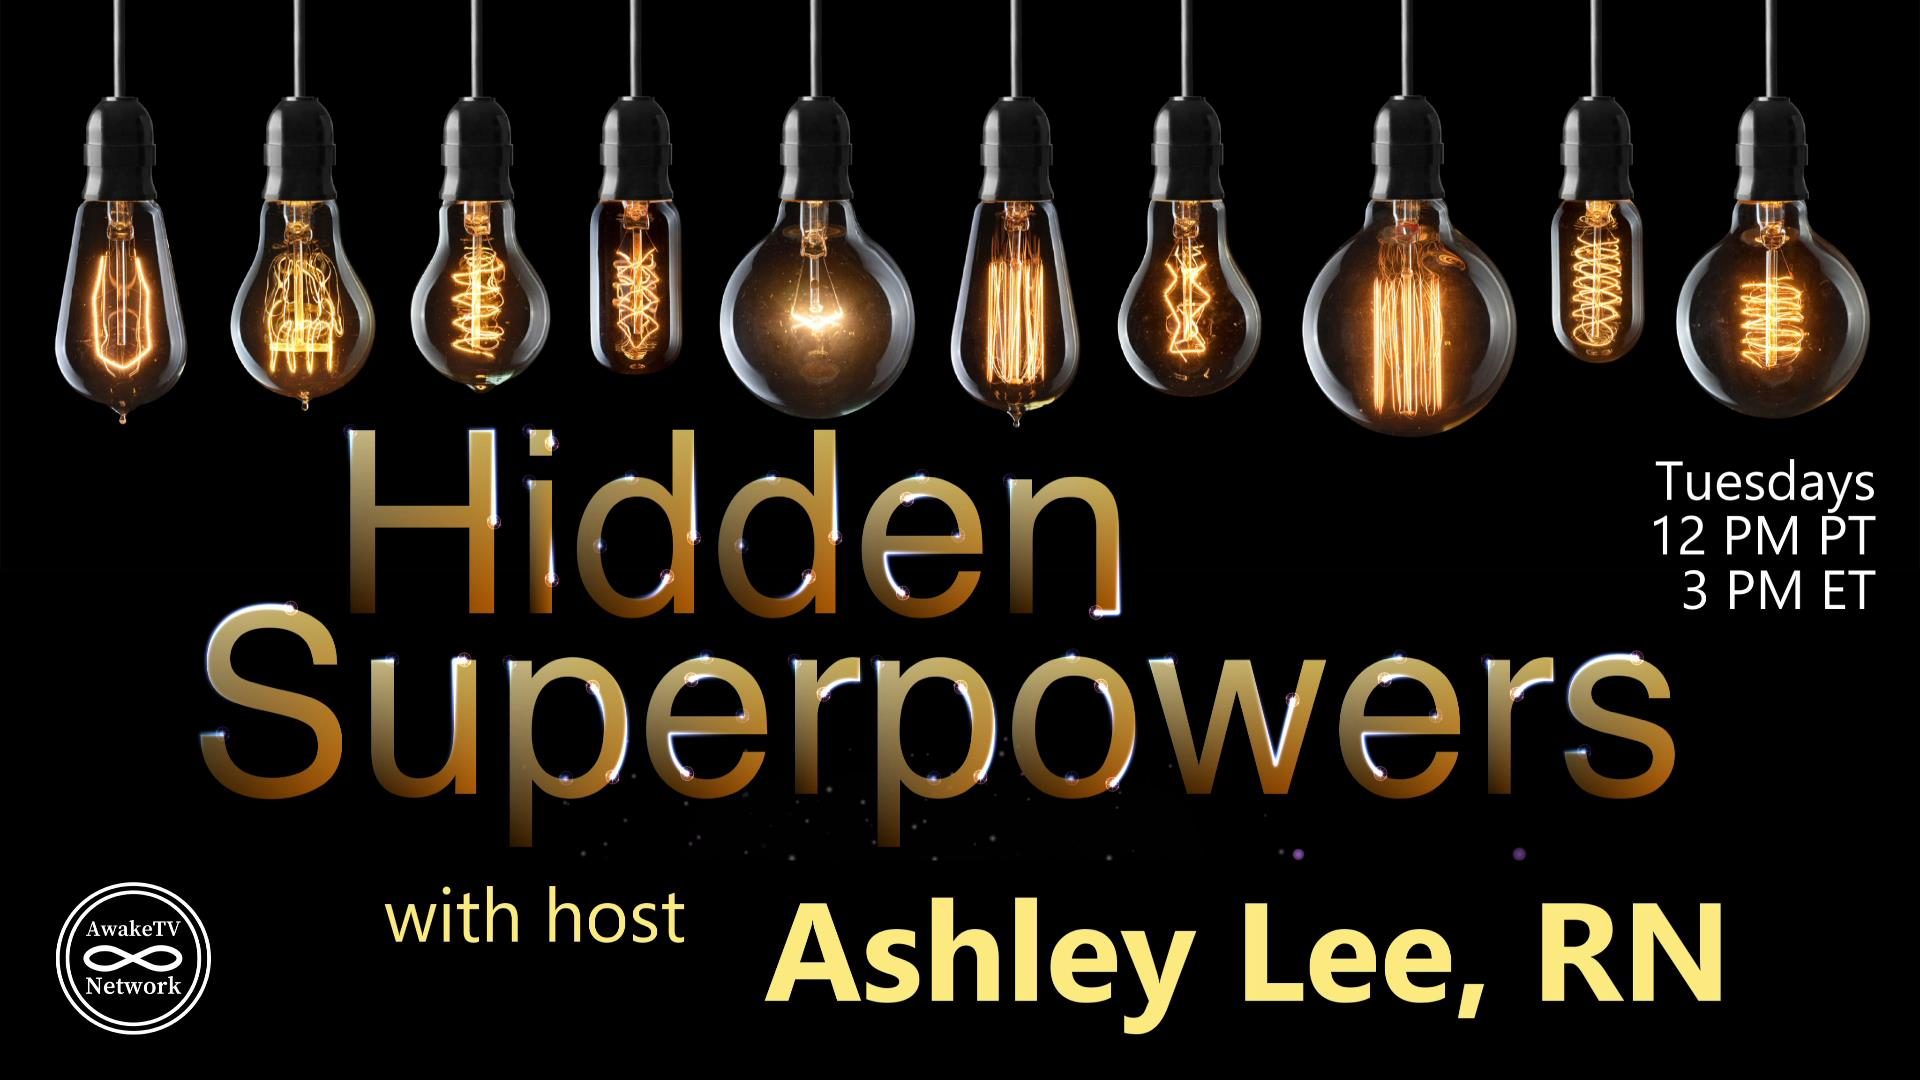 Fullwidth graphic with a black background. A row of lightbulbs rests at the top. The title HIDDEN SUPERPOWERS with Ashley Lee on AwakeTVNetwork.